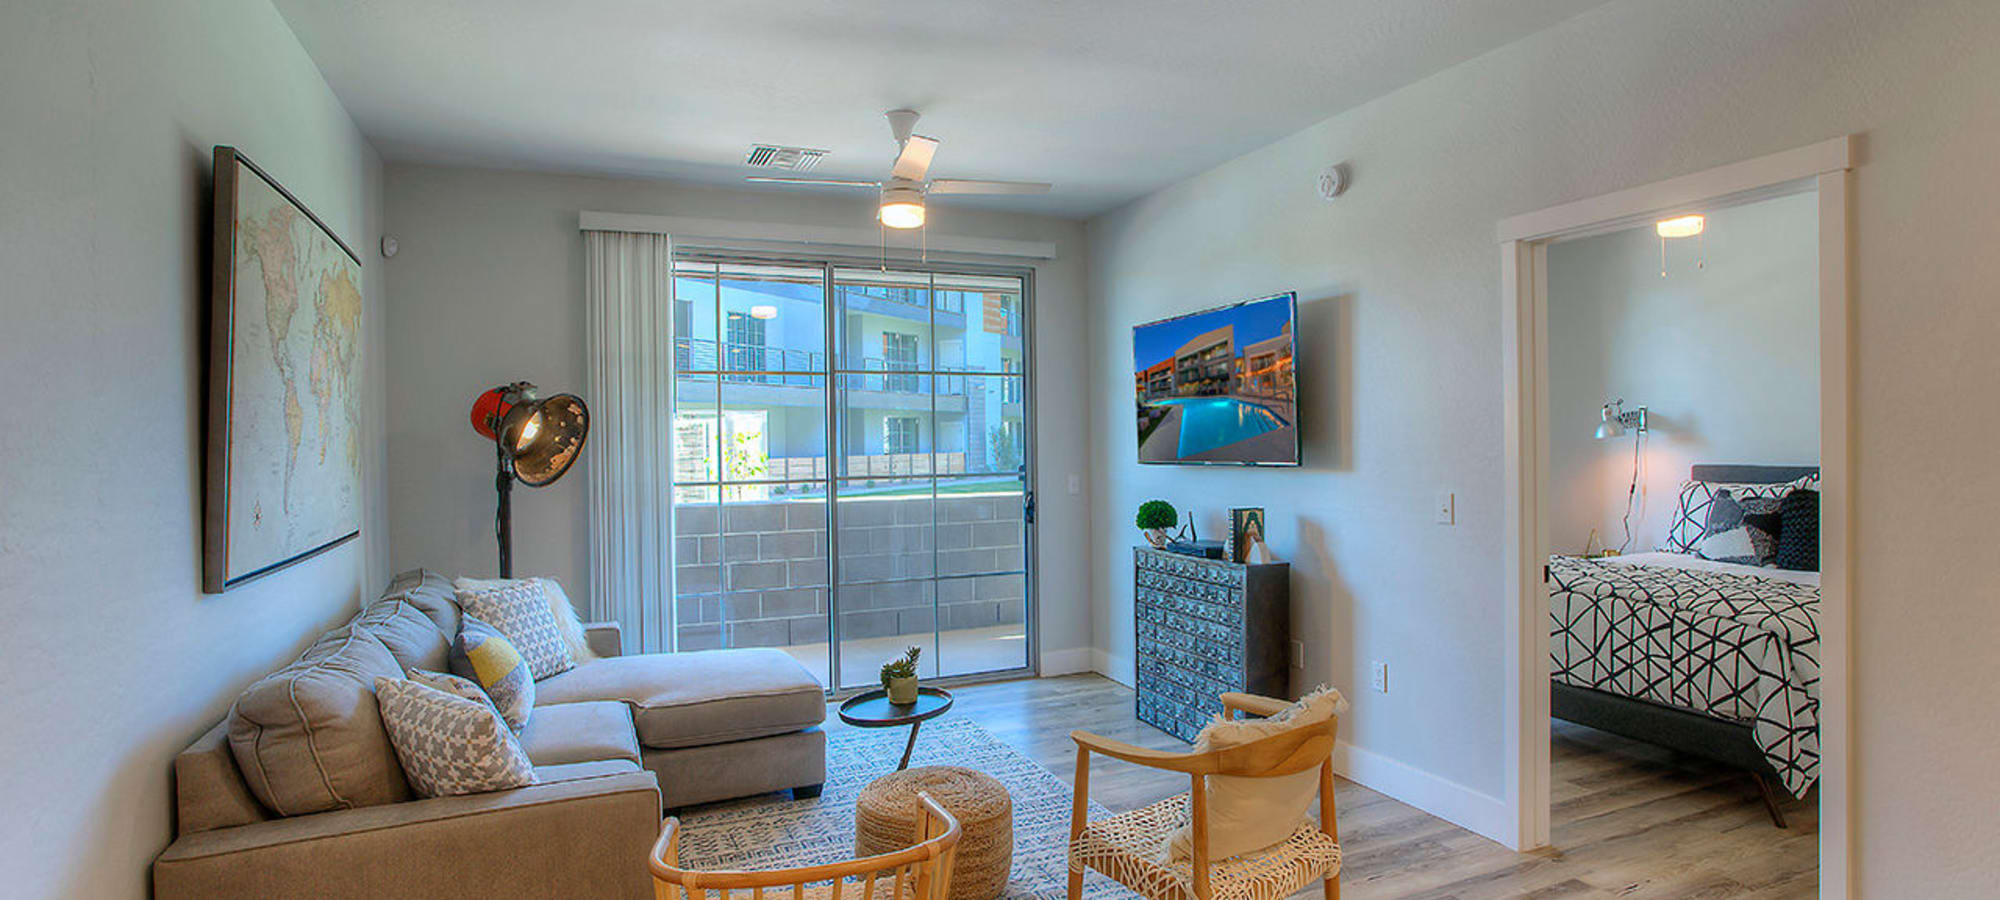 Living area looking out onto private patio of model home at District Lofts in Gilbert, Arizona